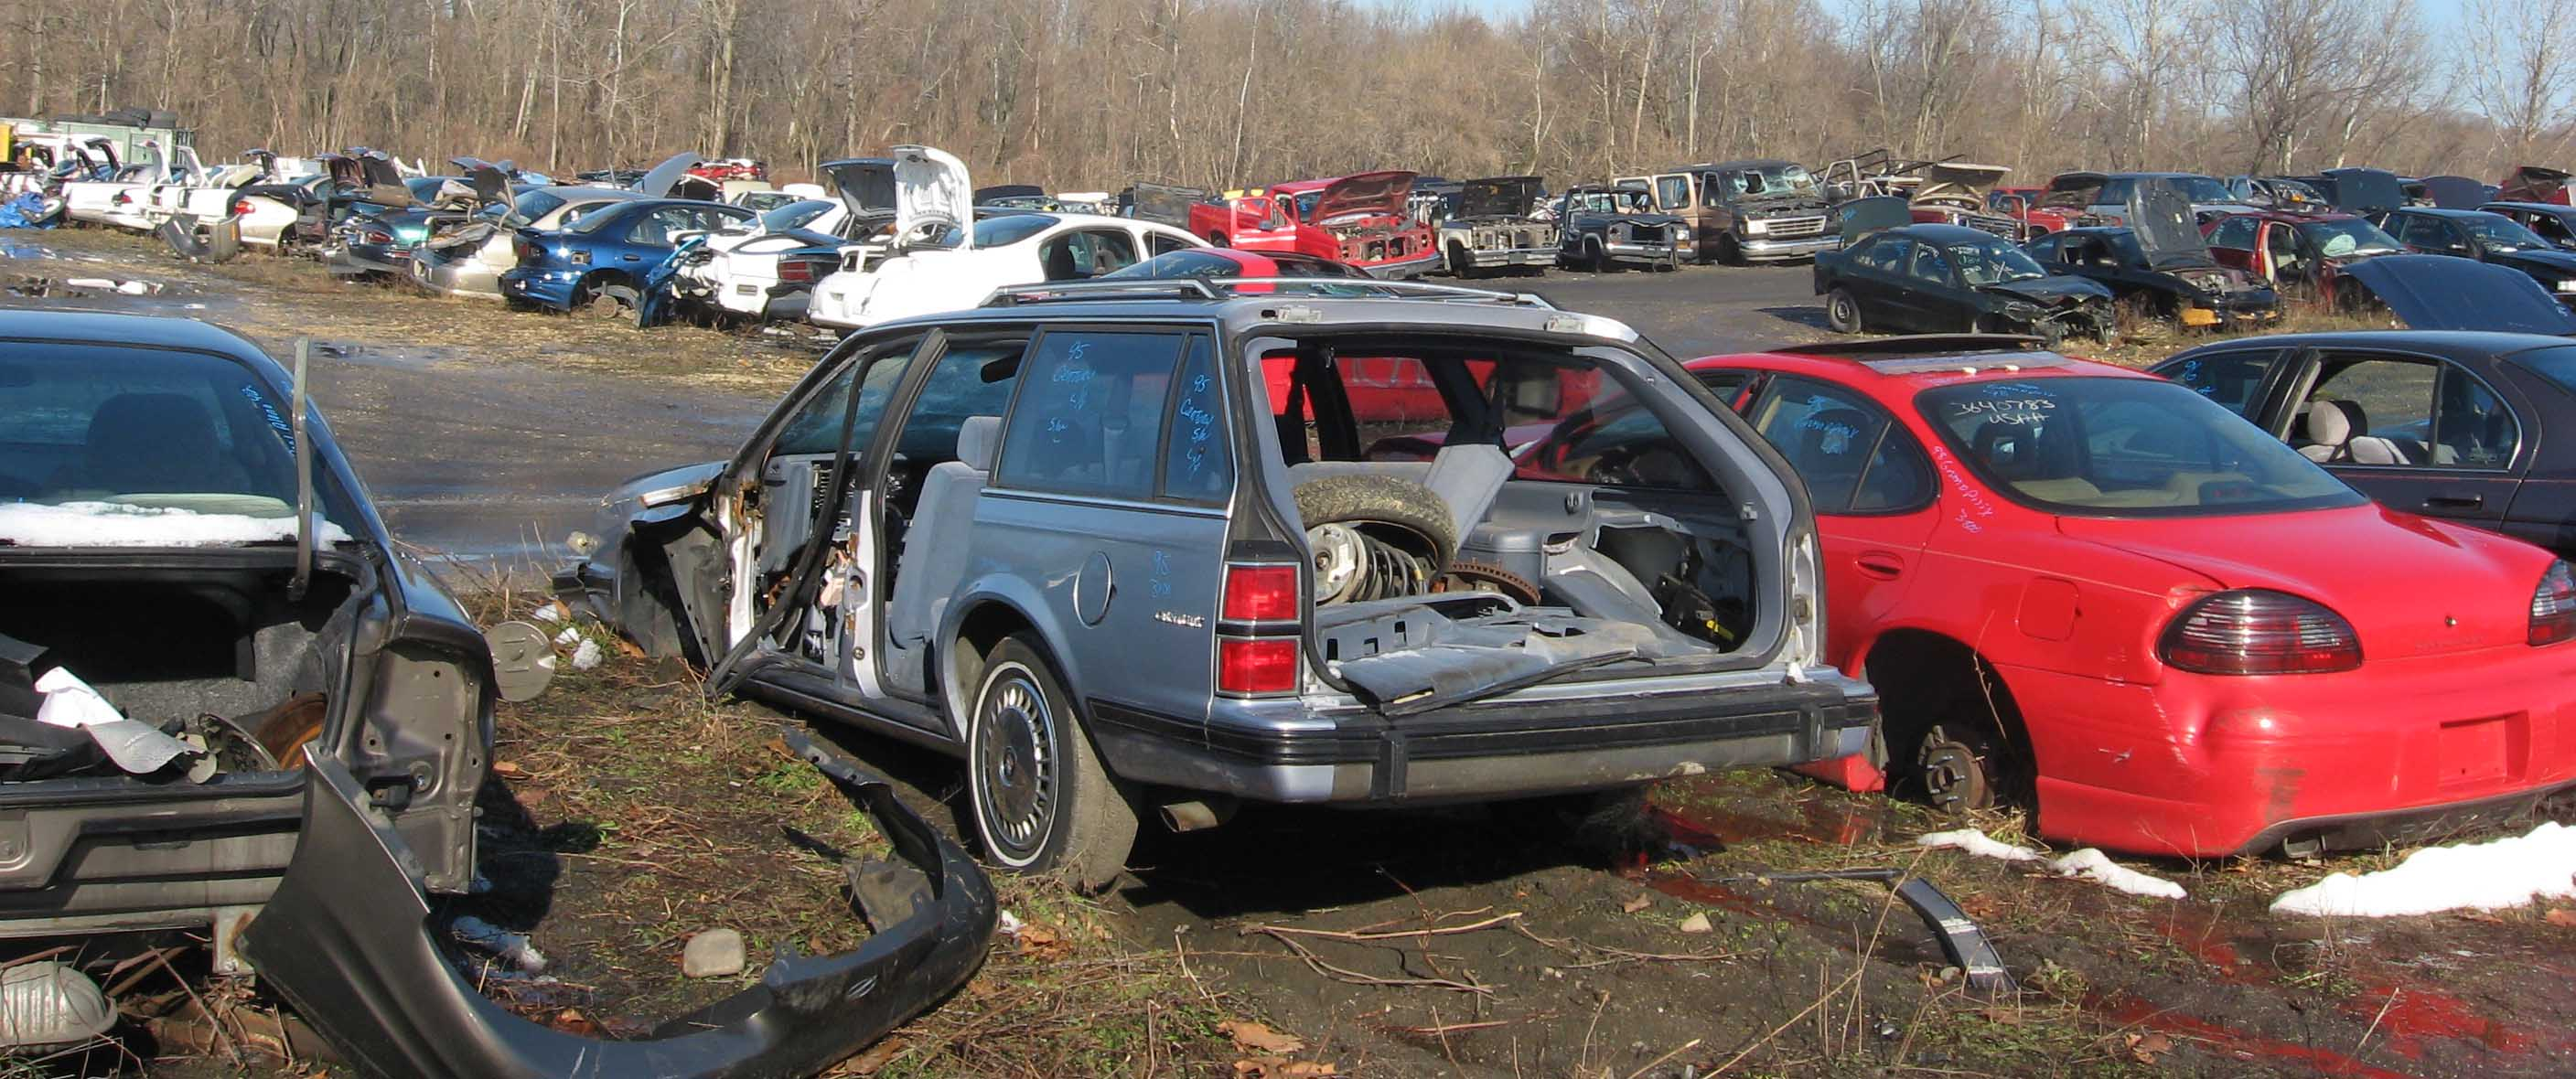 File:Auto scrapyard 2.jpg - Wikimedia Commons